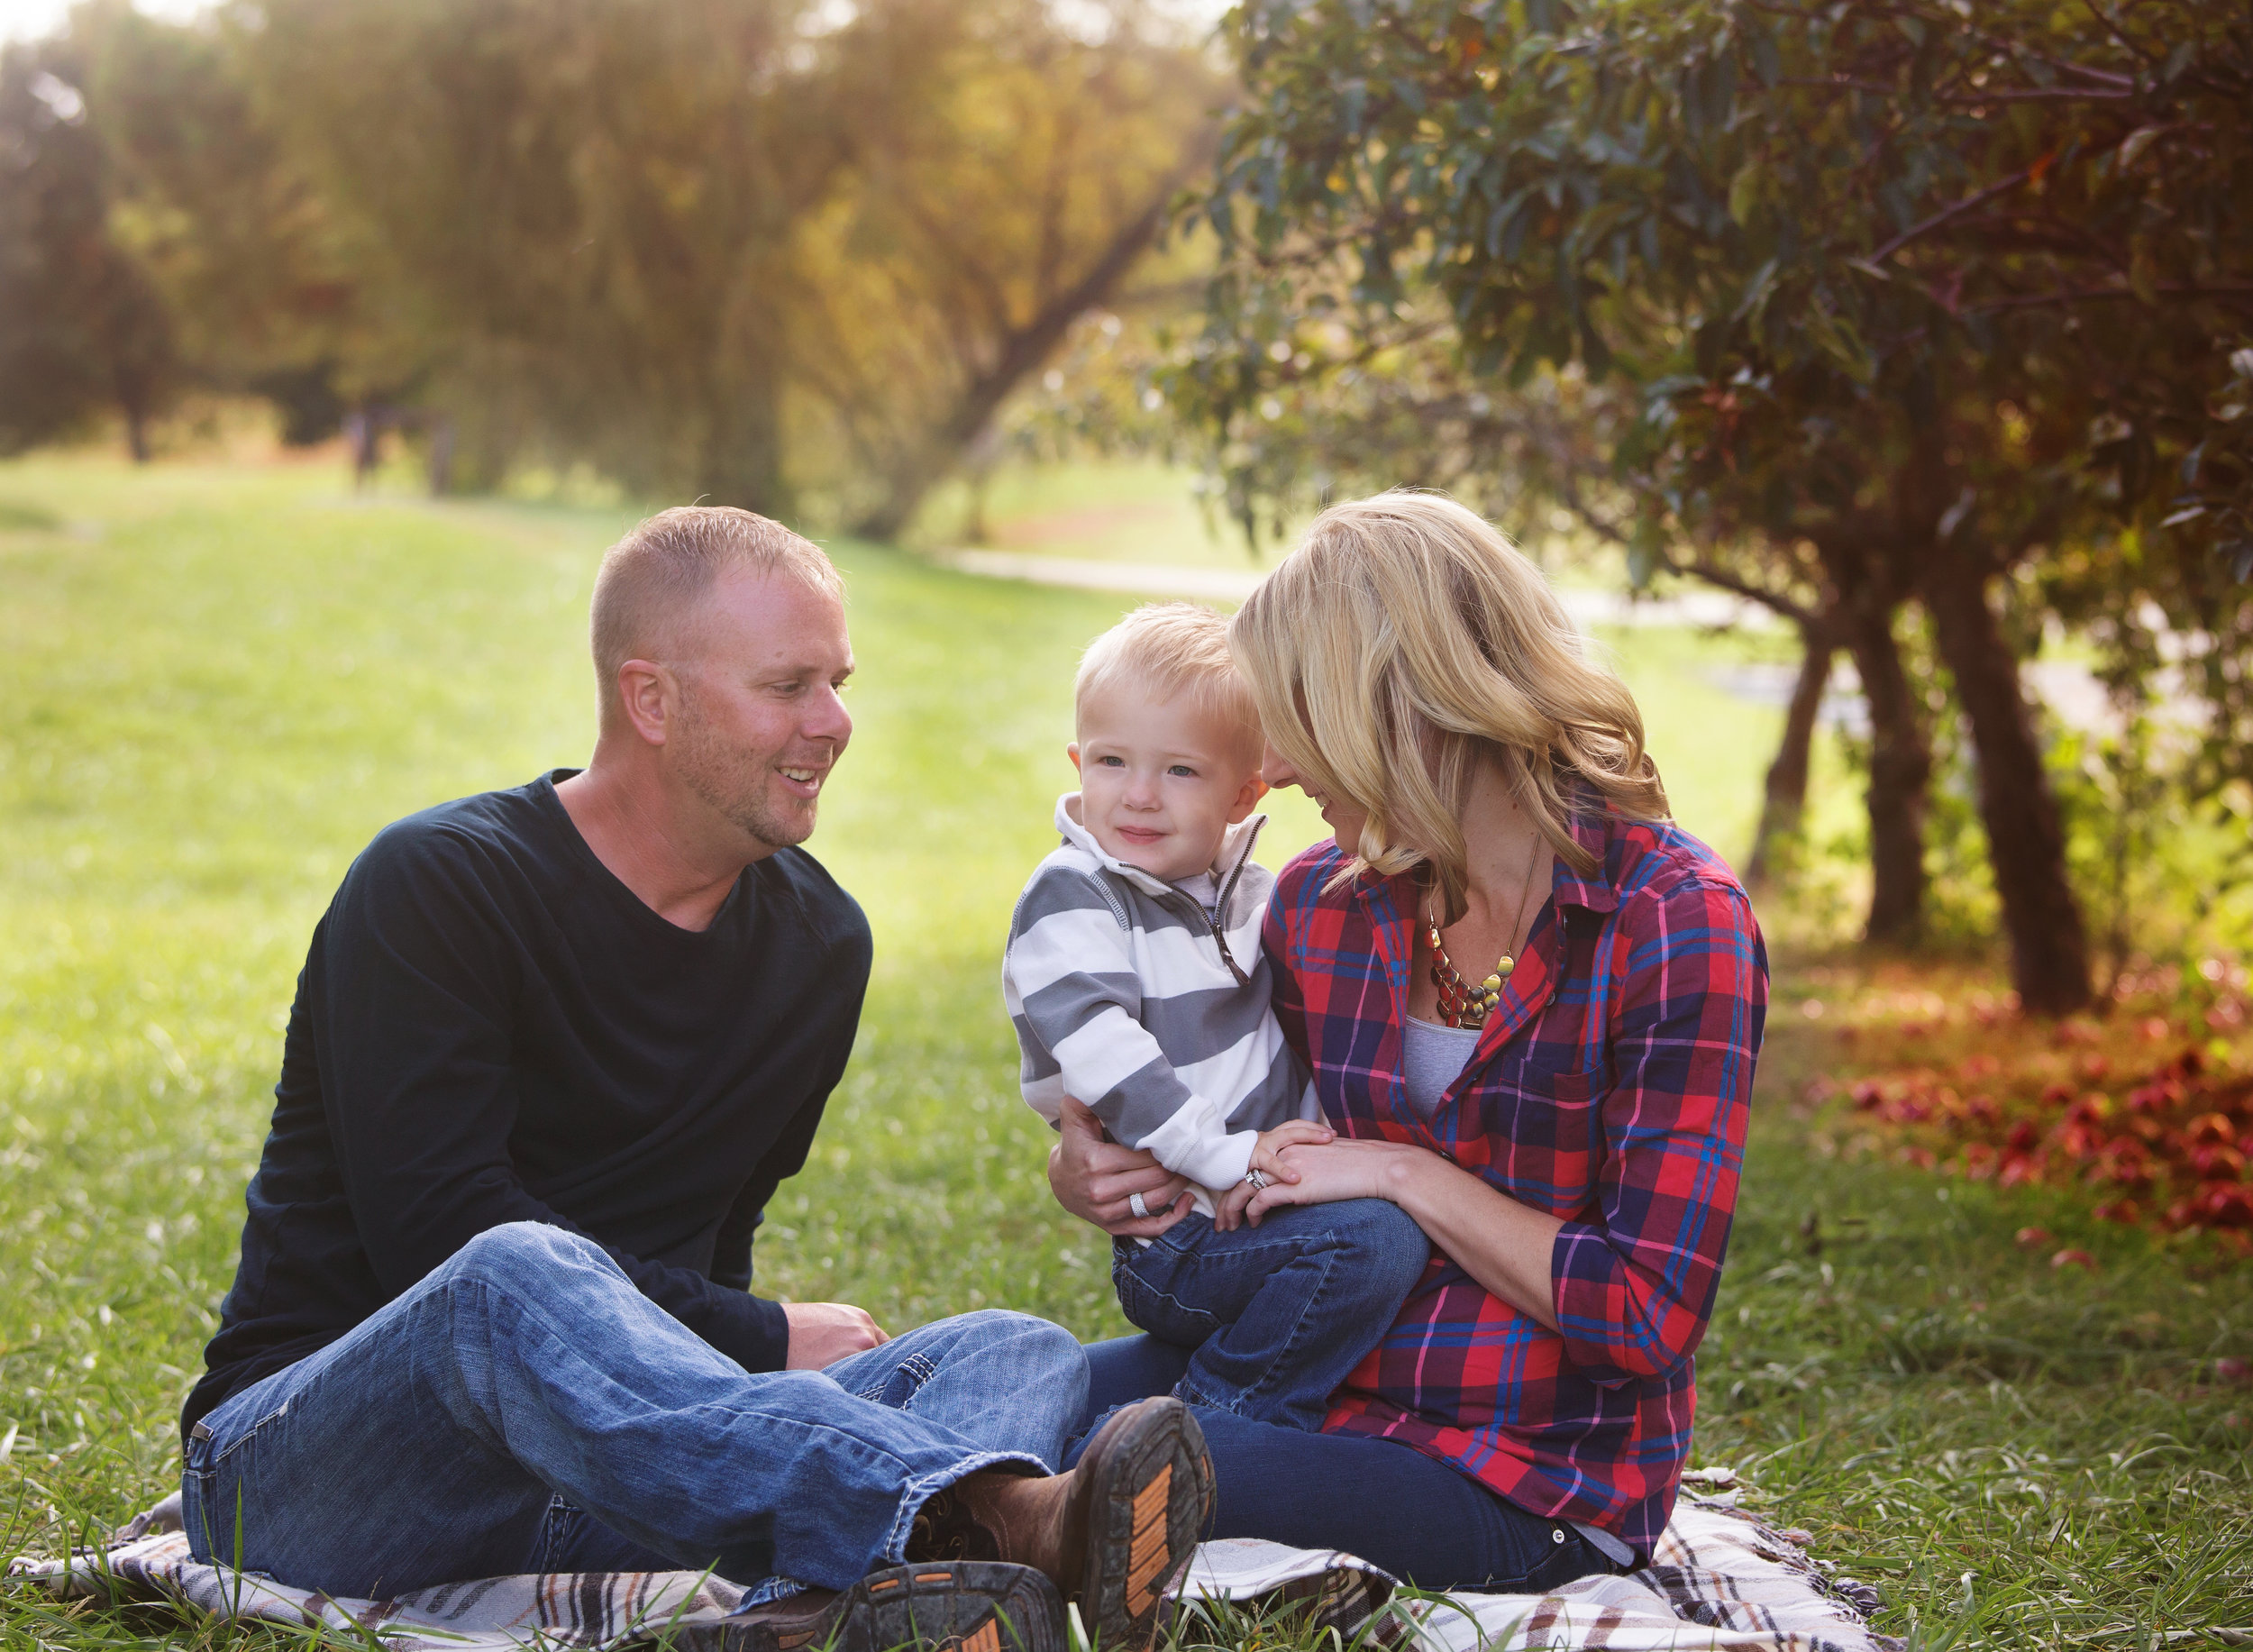 fall family photos - apple orchard - cider hill orchard - kansas city fall family pictures - cute family at apple orchard - leavenworth kansas -  kansas city kansas family photos